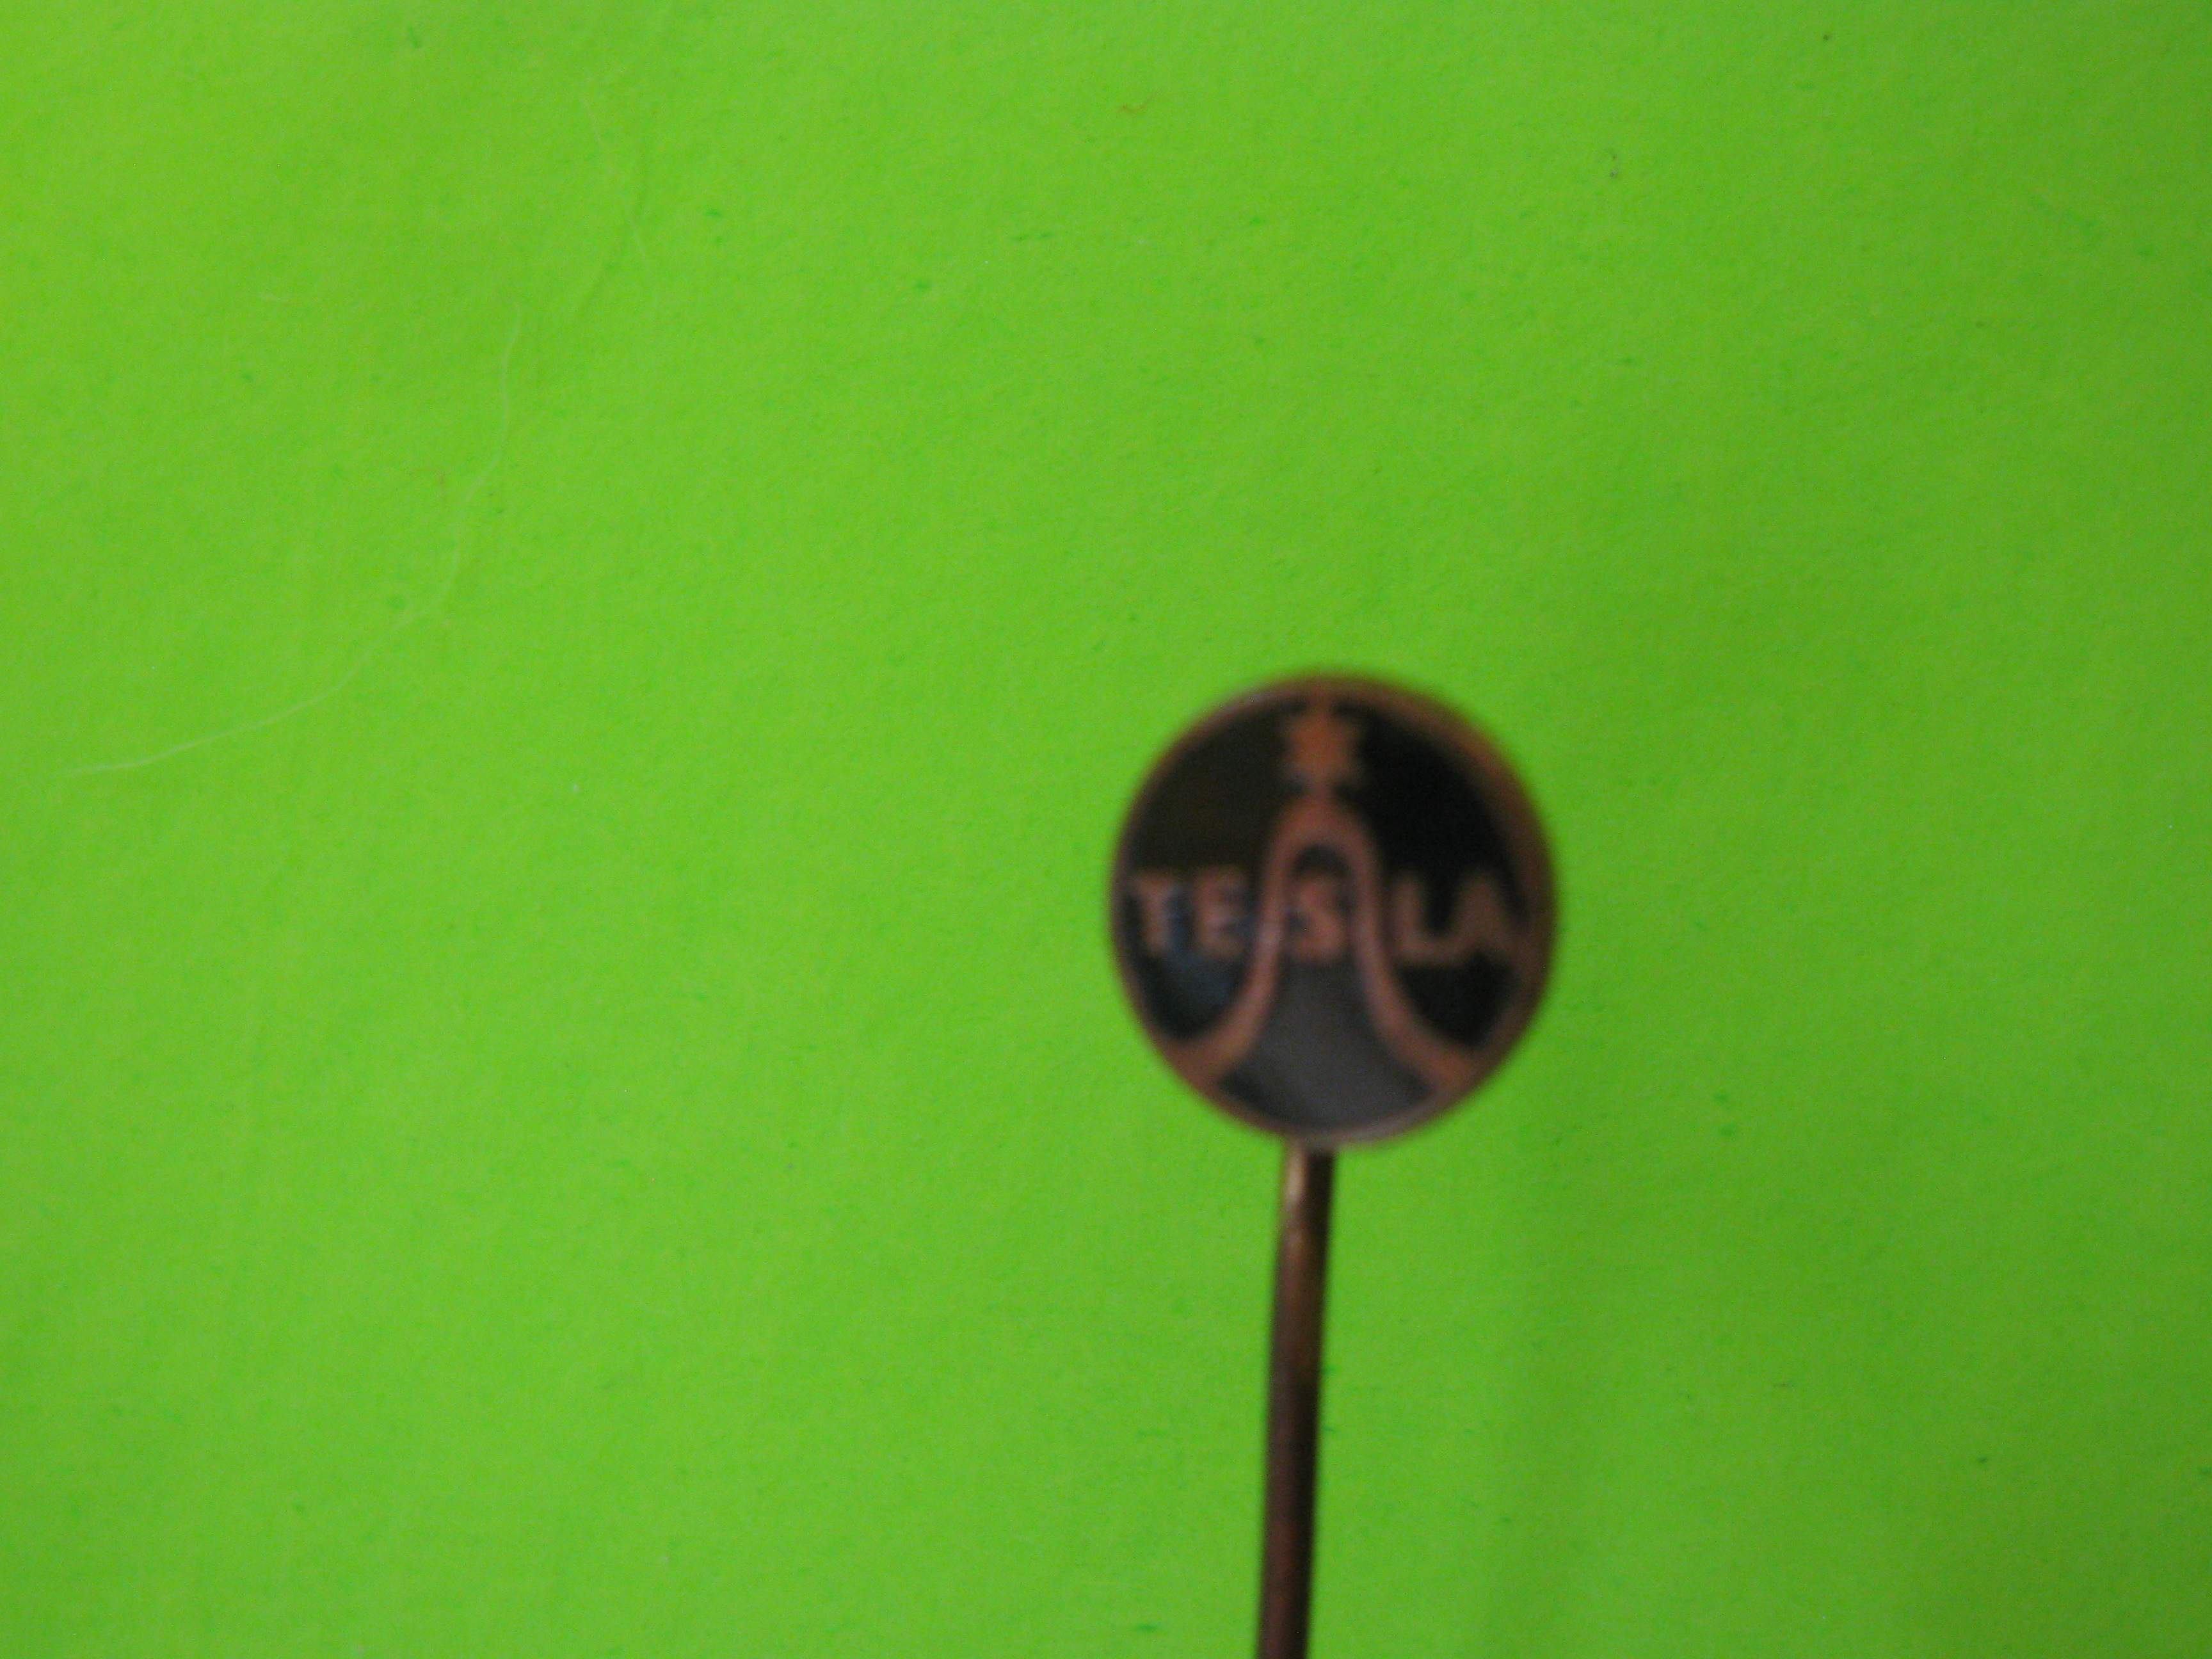 Vintage Tesla Stick Pin, Metal with Black Colored Background